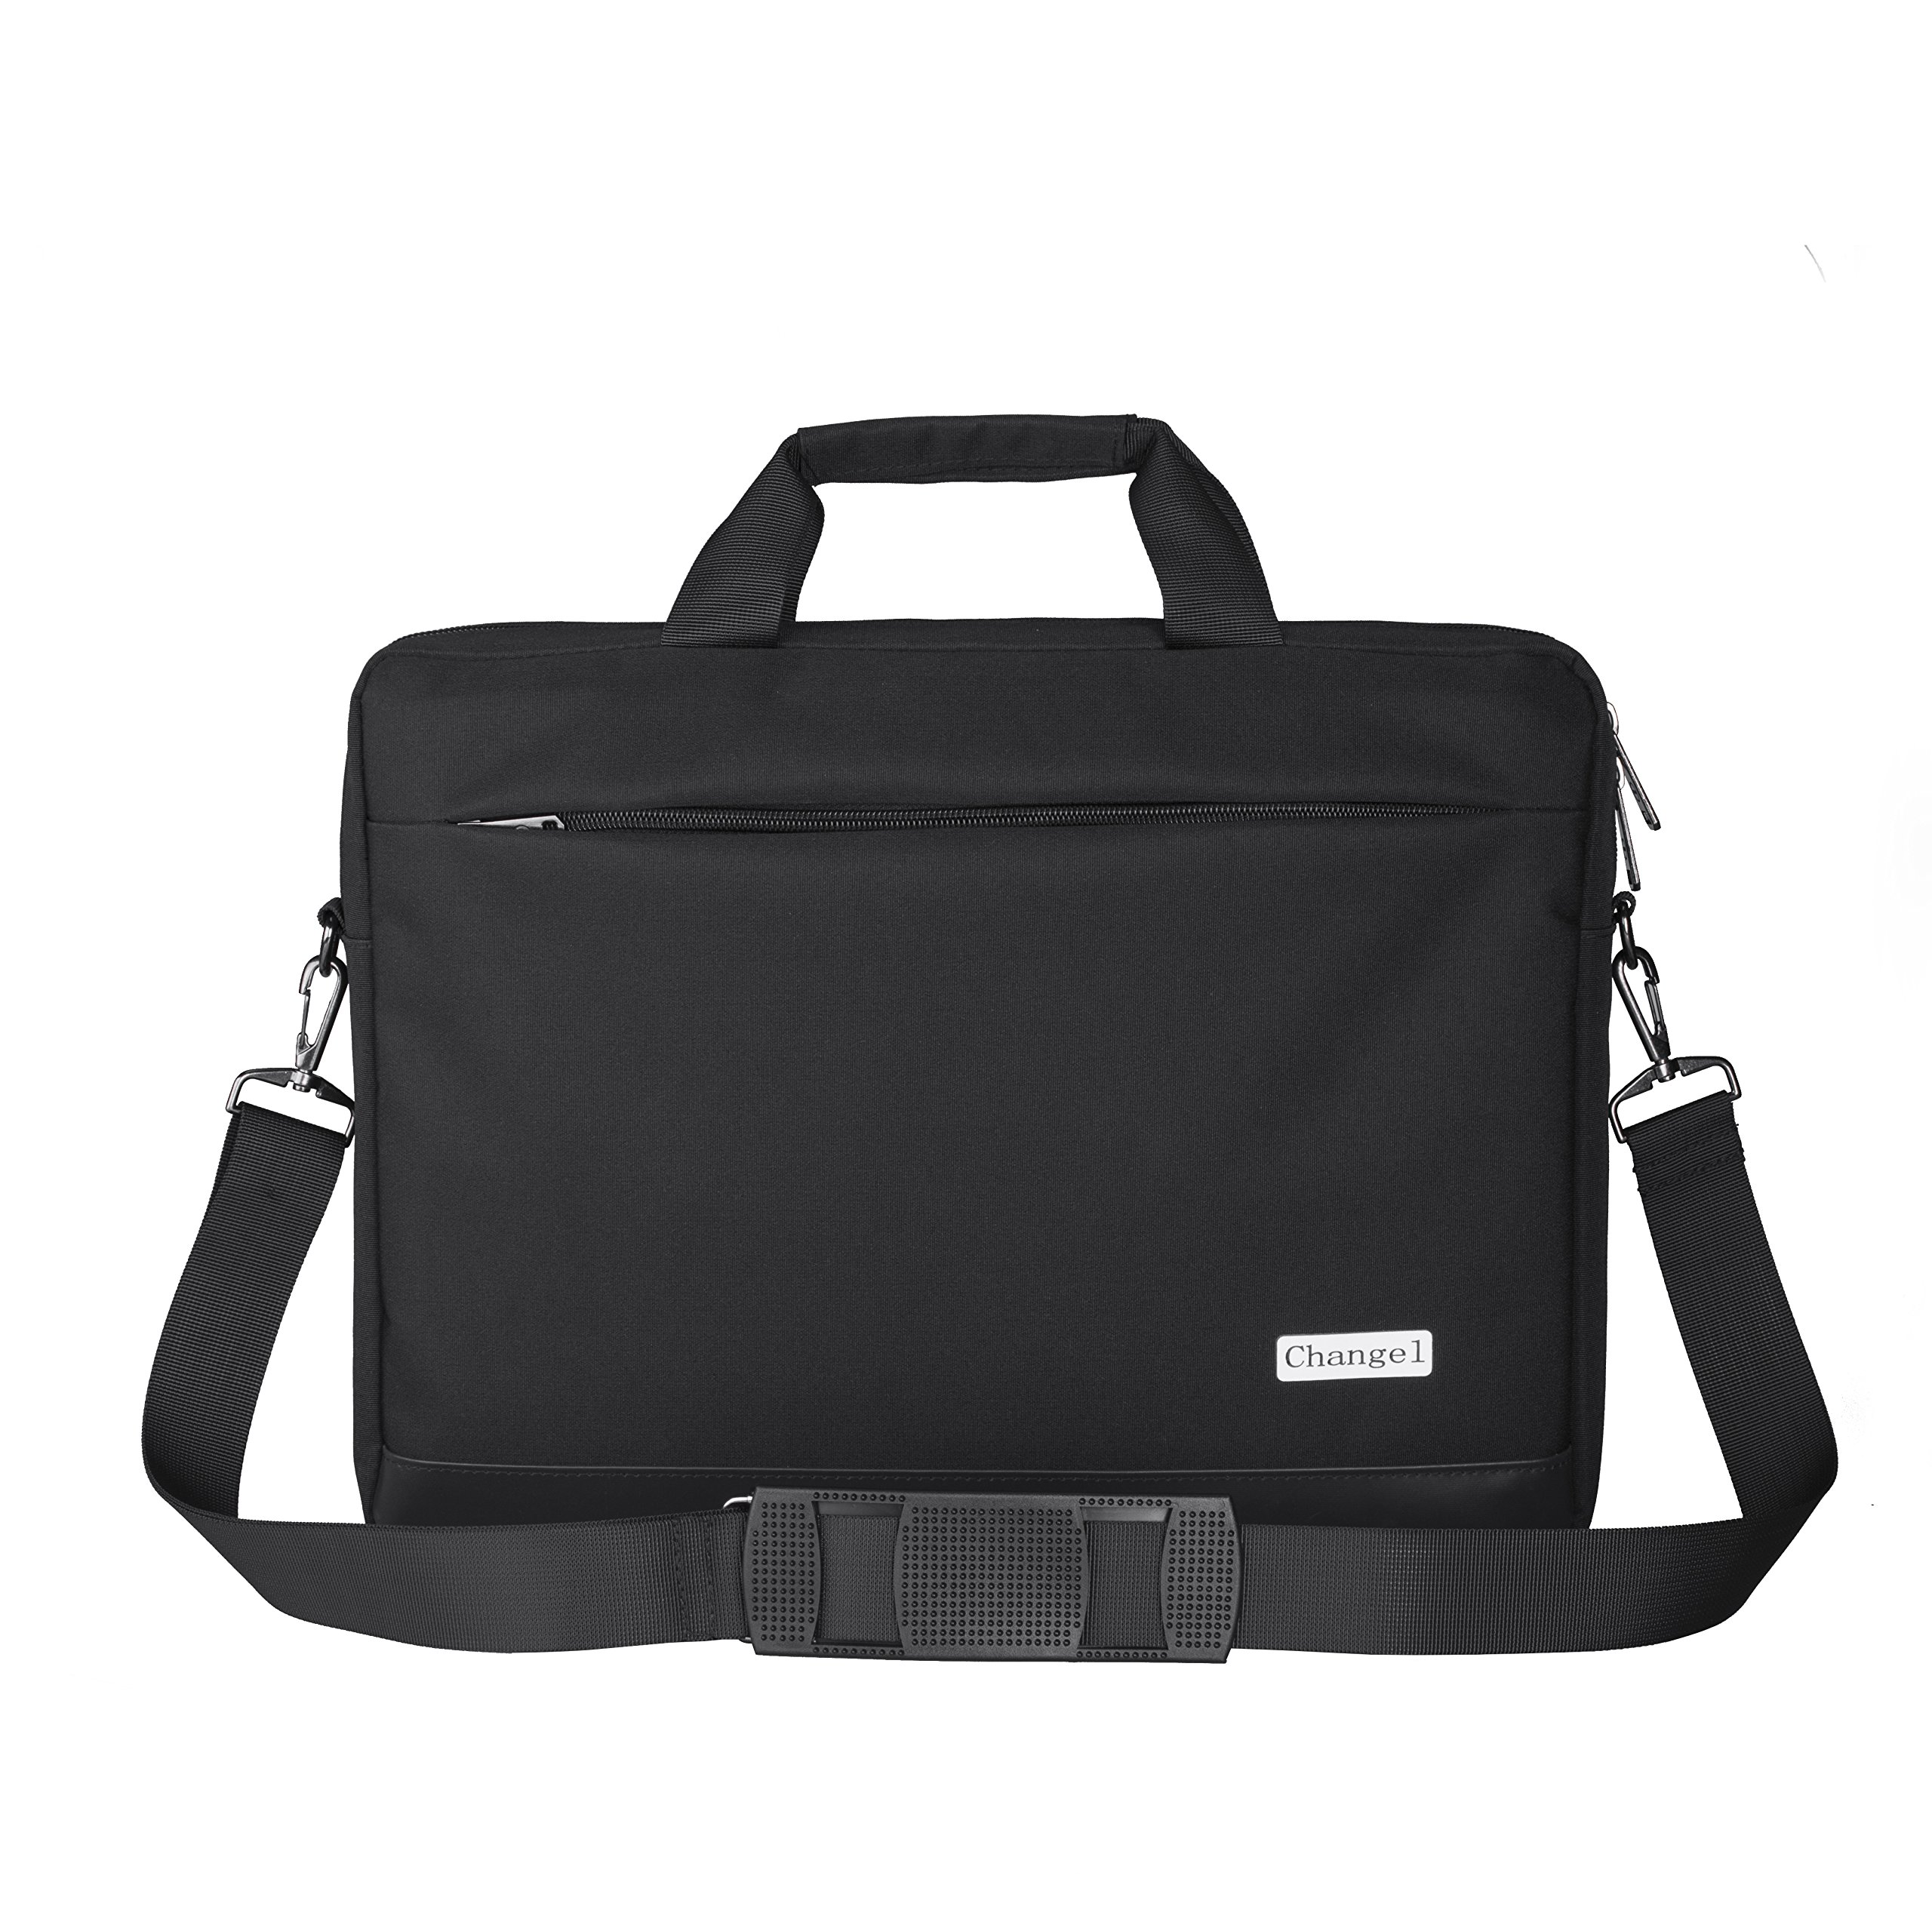 15.6 inch Laptop Bag, changel Laptop Case, Briefcase Messenger Shoulder Bag for Men Women, College Students Business People Office Workers Professional Computer, Notebook, Table, MacBook Bag, Black